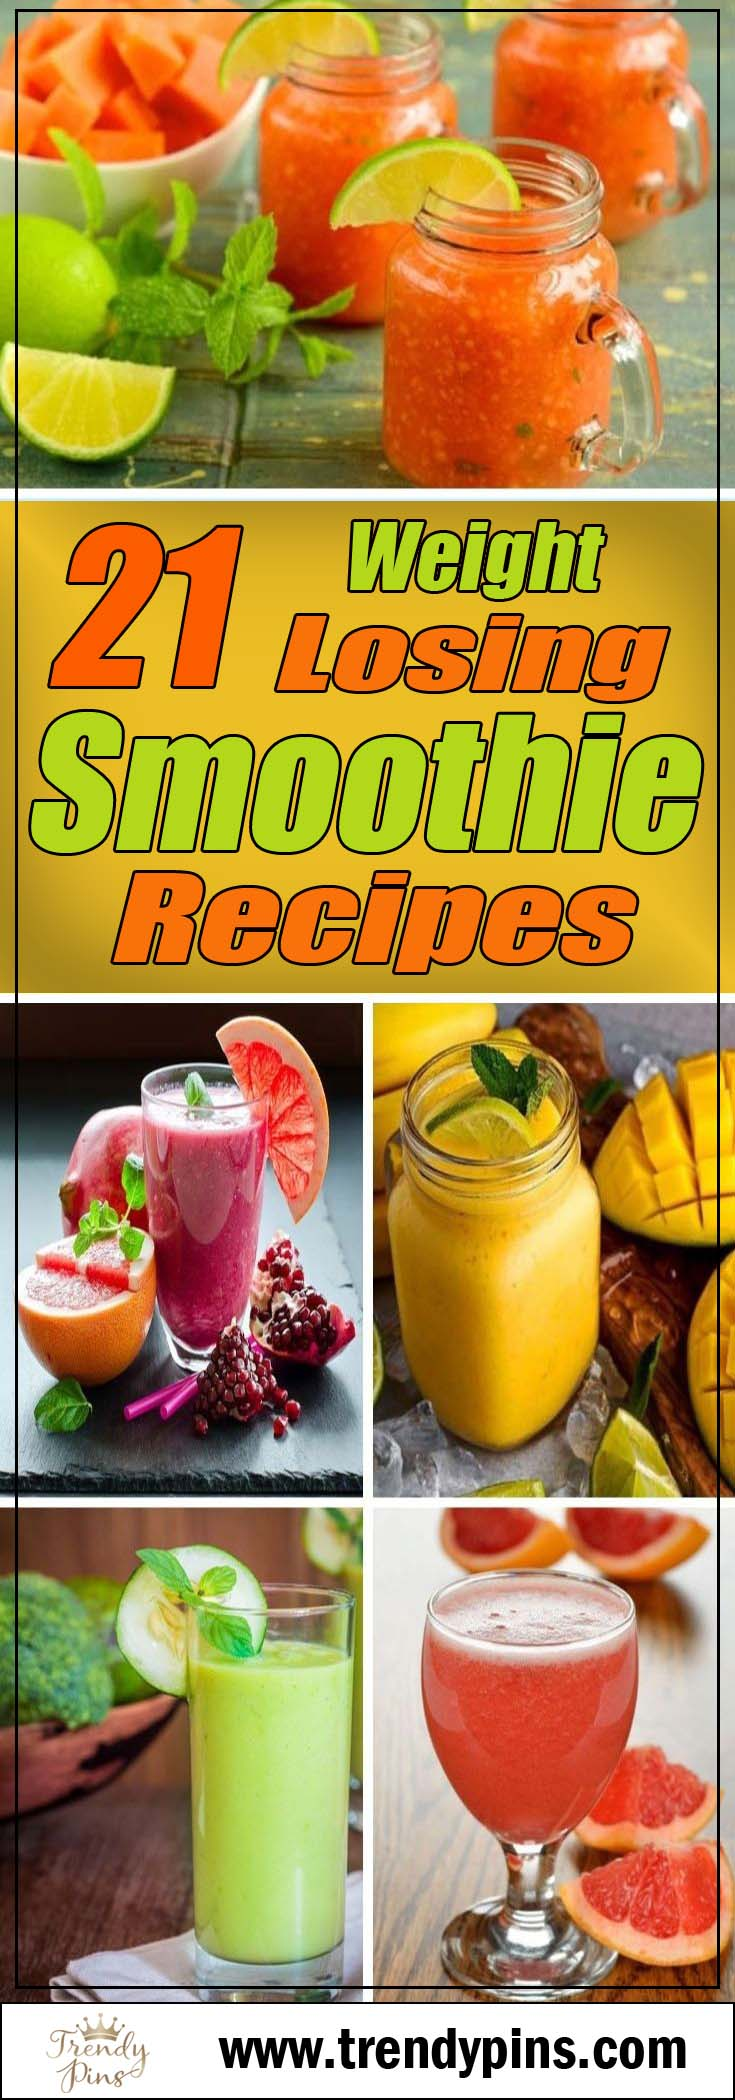 21 Weight Losing Smoothie Recipes #smoothies #healthy living #healthy smoothies #trendypins